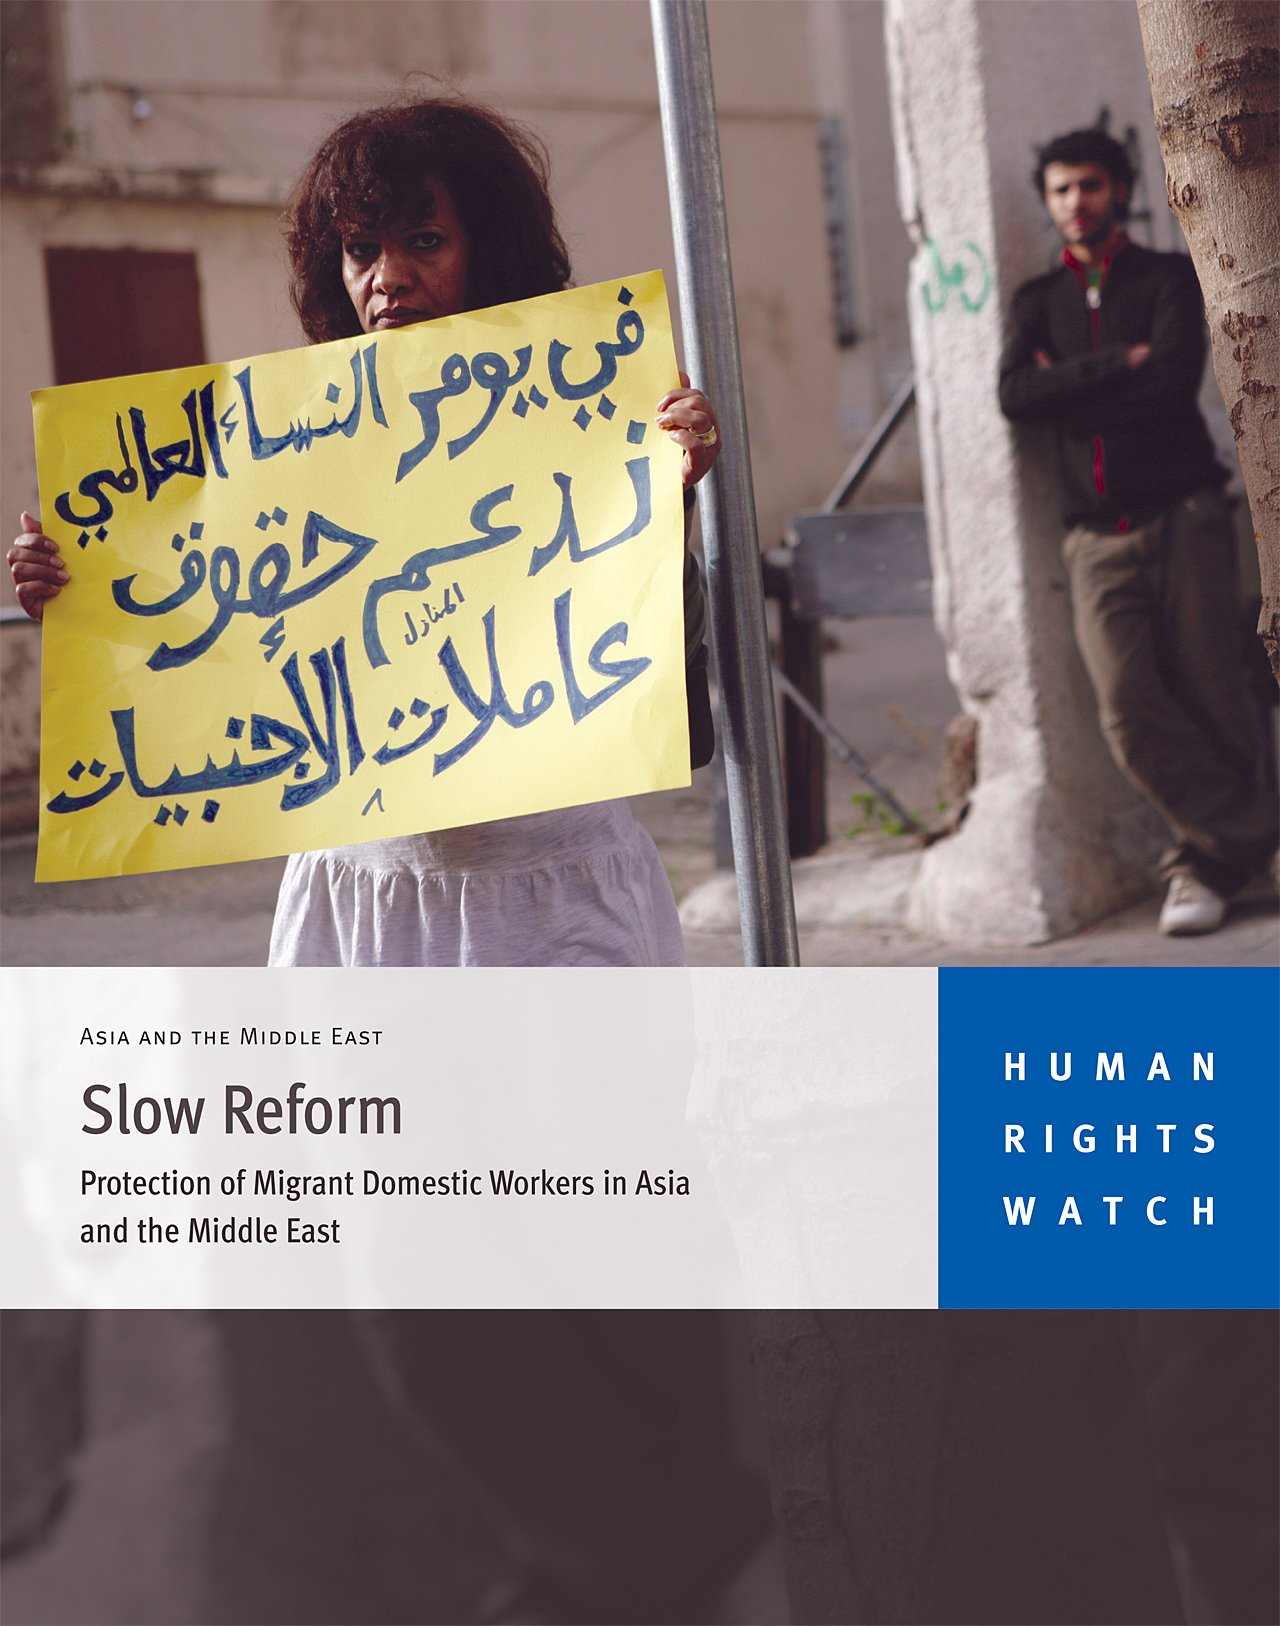 Slow Reform: Protection of Migrant Domestic Workers in Asia and the Middle East